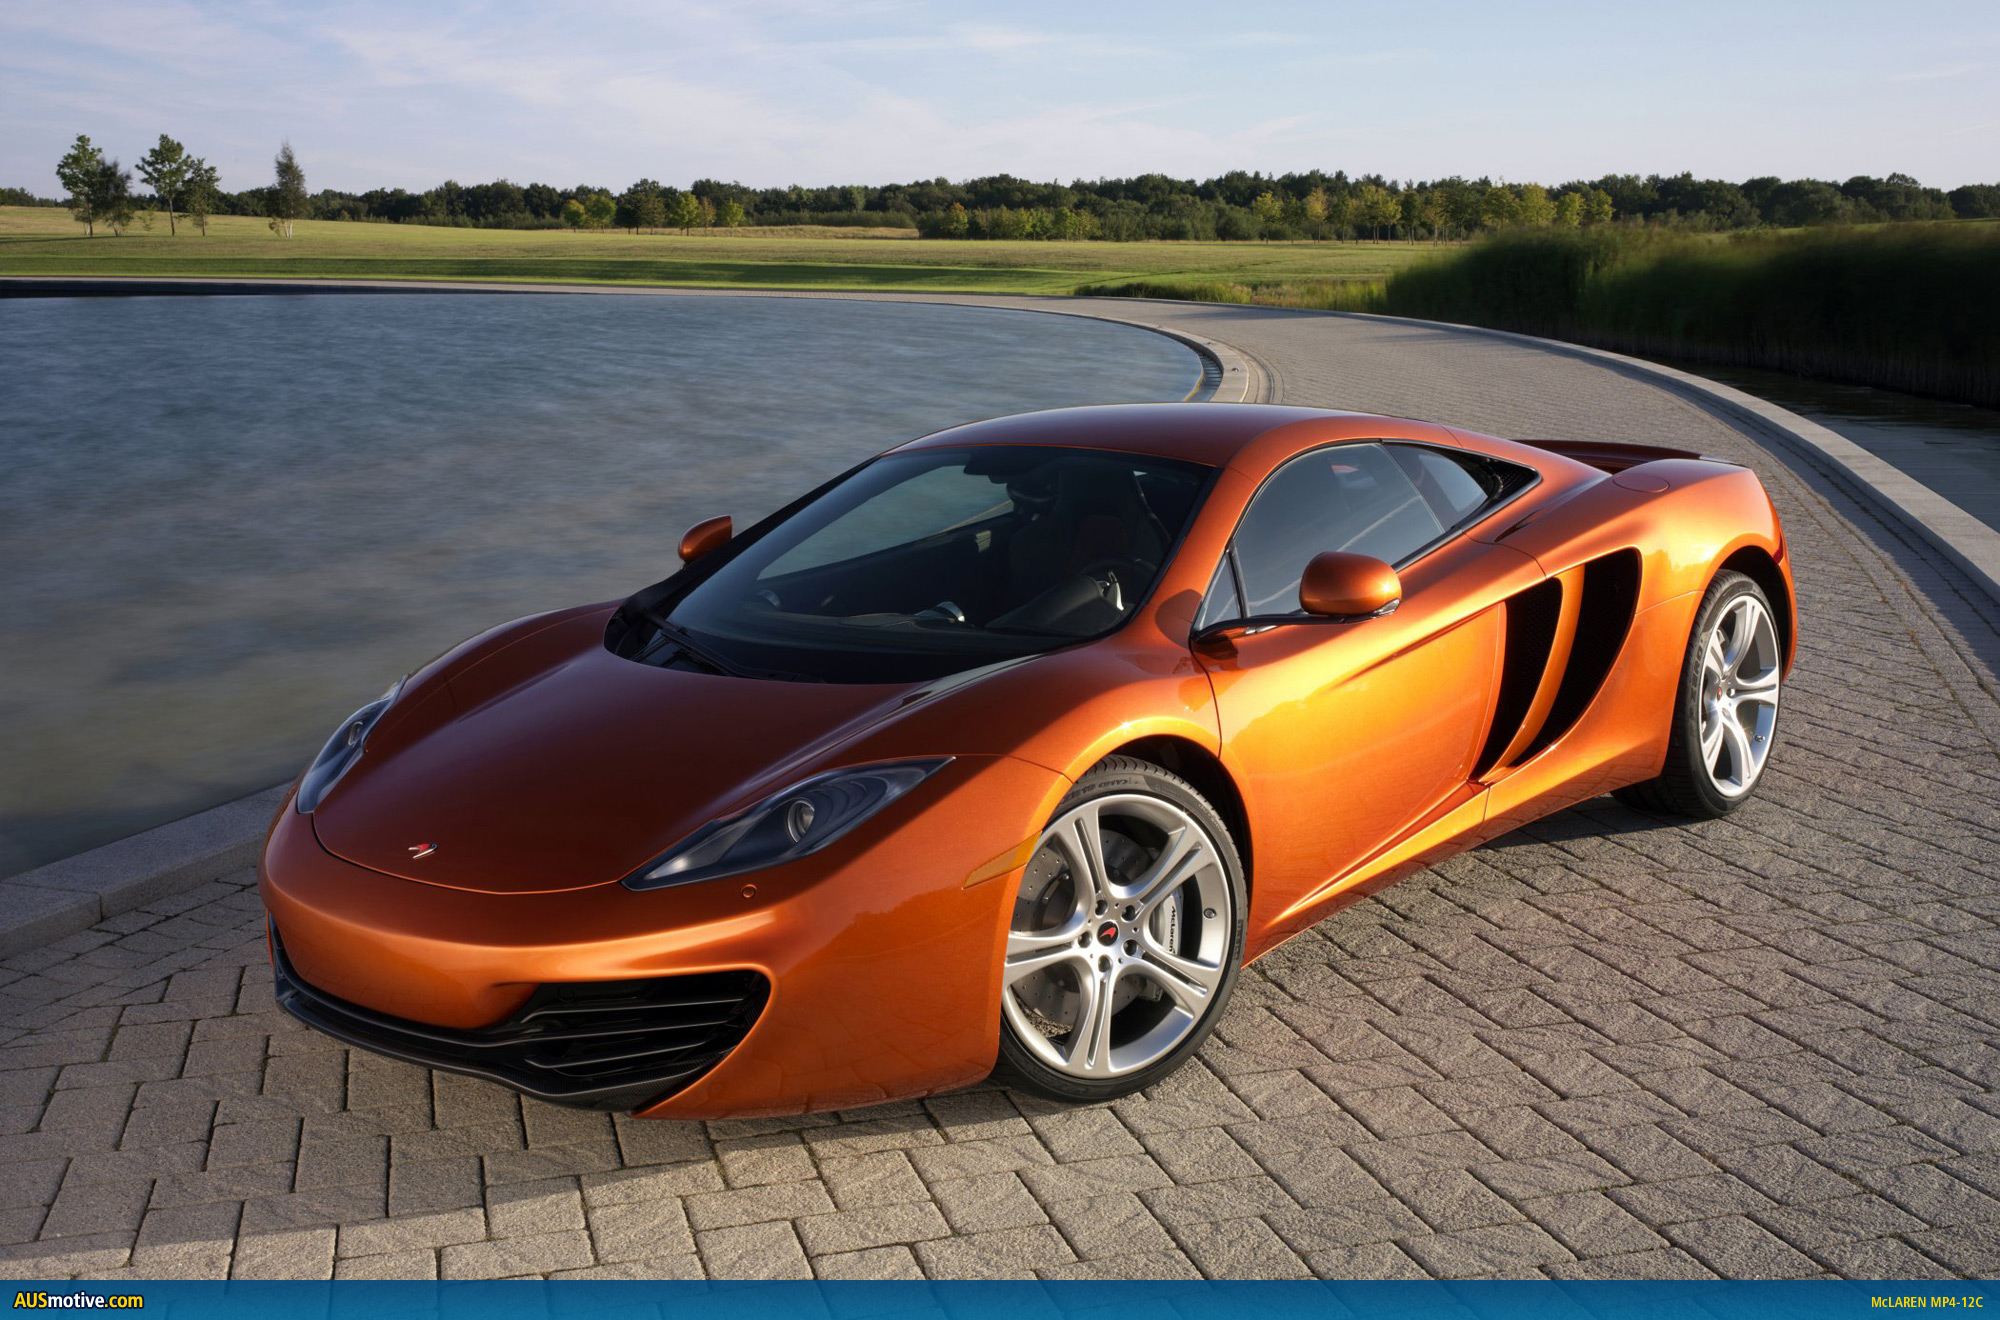 2011 mclaren mp4 12c photo gallery. Black Bedroom Furniture Sets. Home Design Ideas